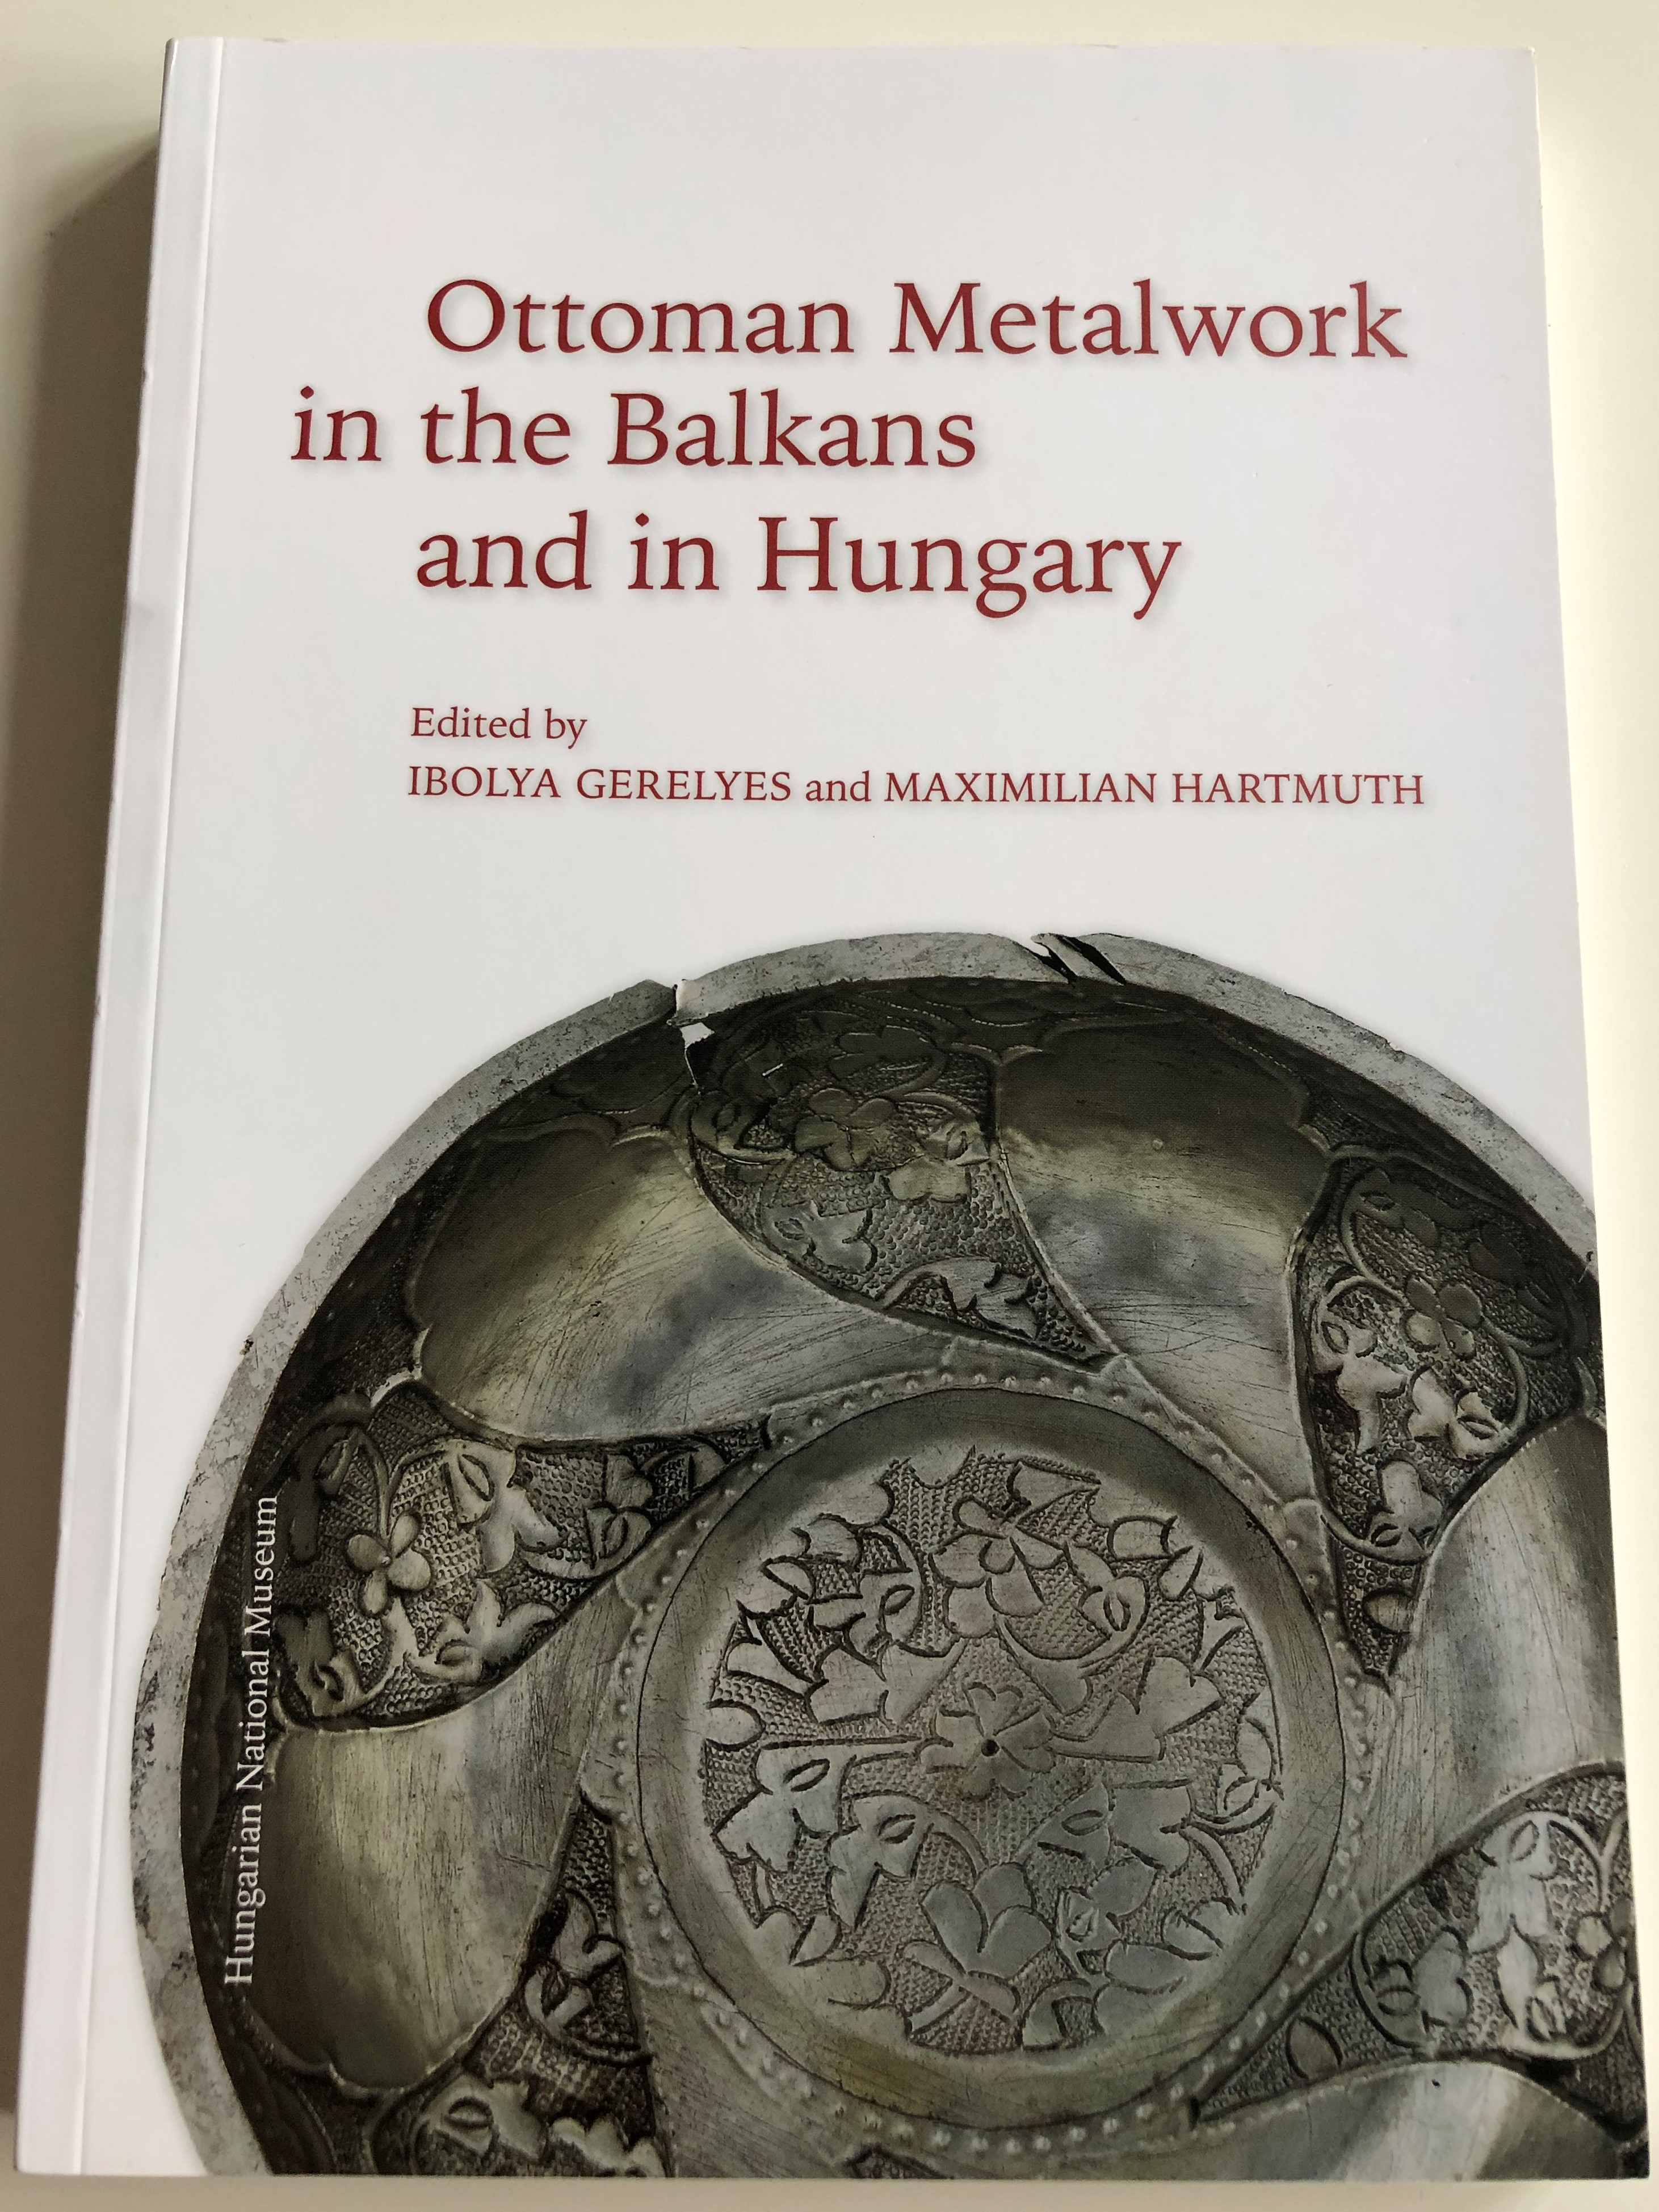 ottoman-metalwork-in-the-balkans-and-in-hungary-by-ibolya-gerelyes-and-maximilian-hartmuth-hungarian-national-museum-paperback-2015-1-.jpg